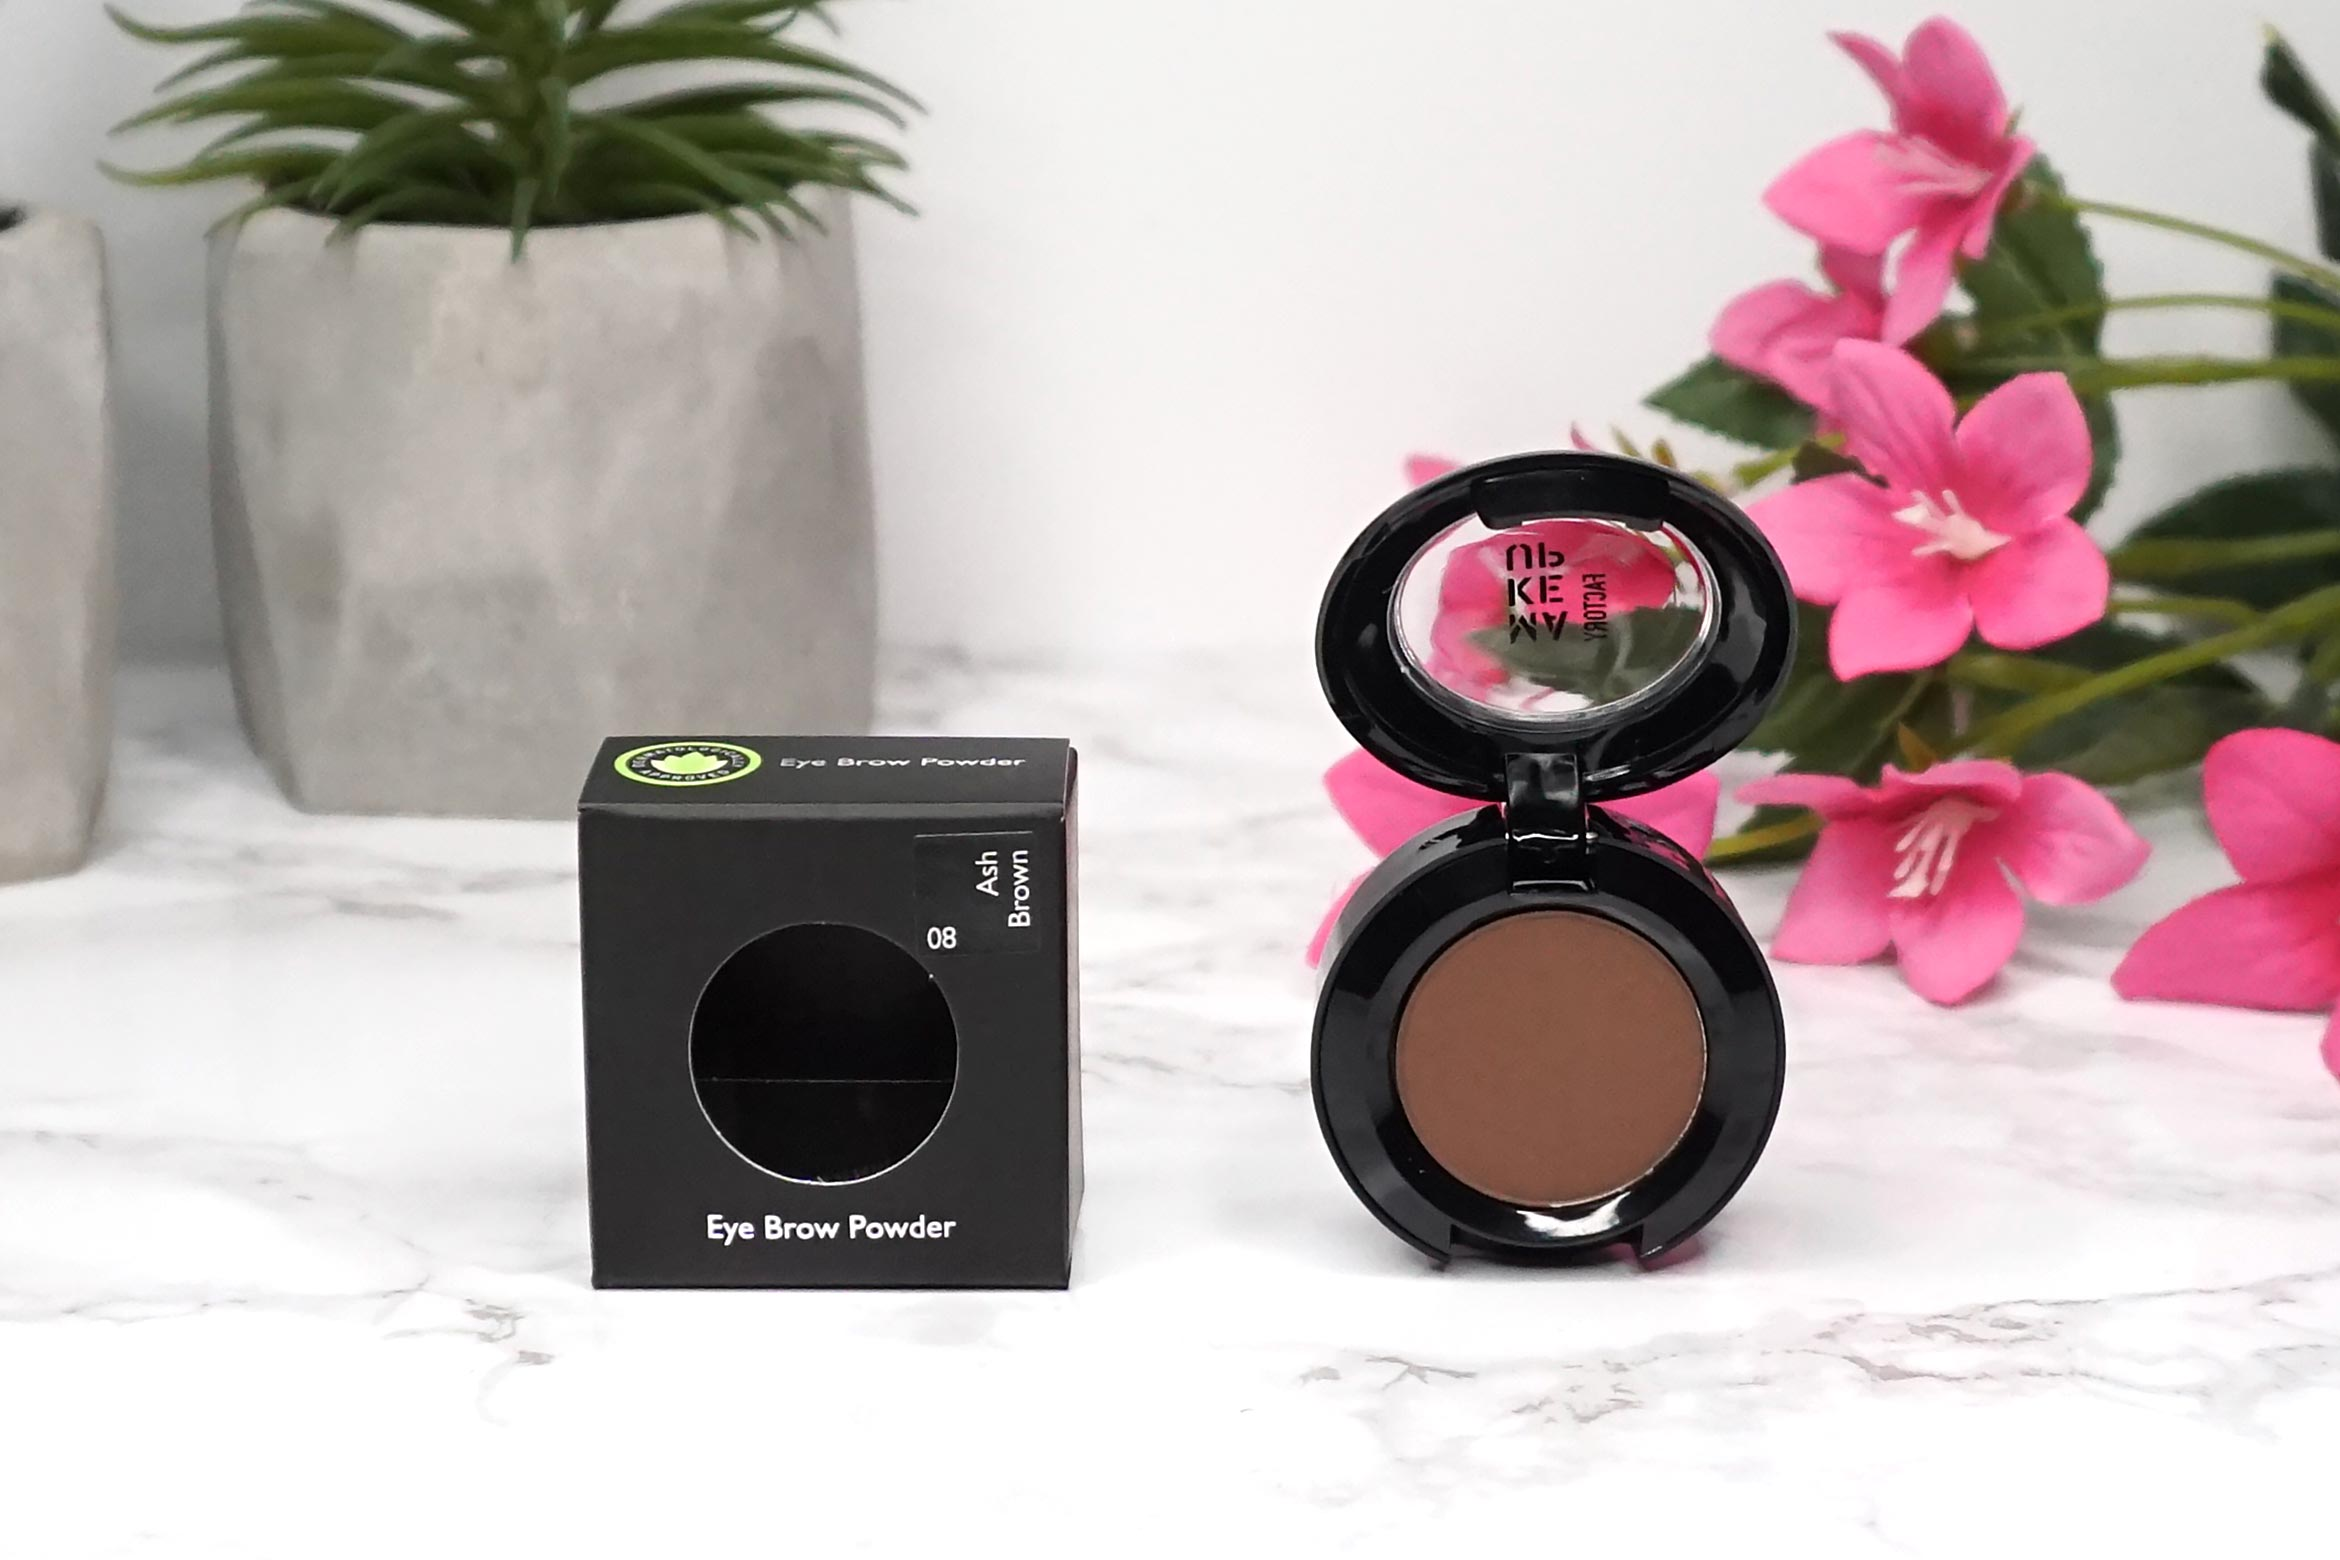 make-up-factory-eye-brow-powder-review-1